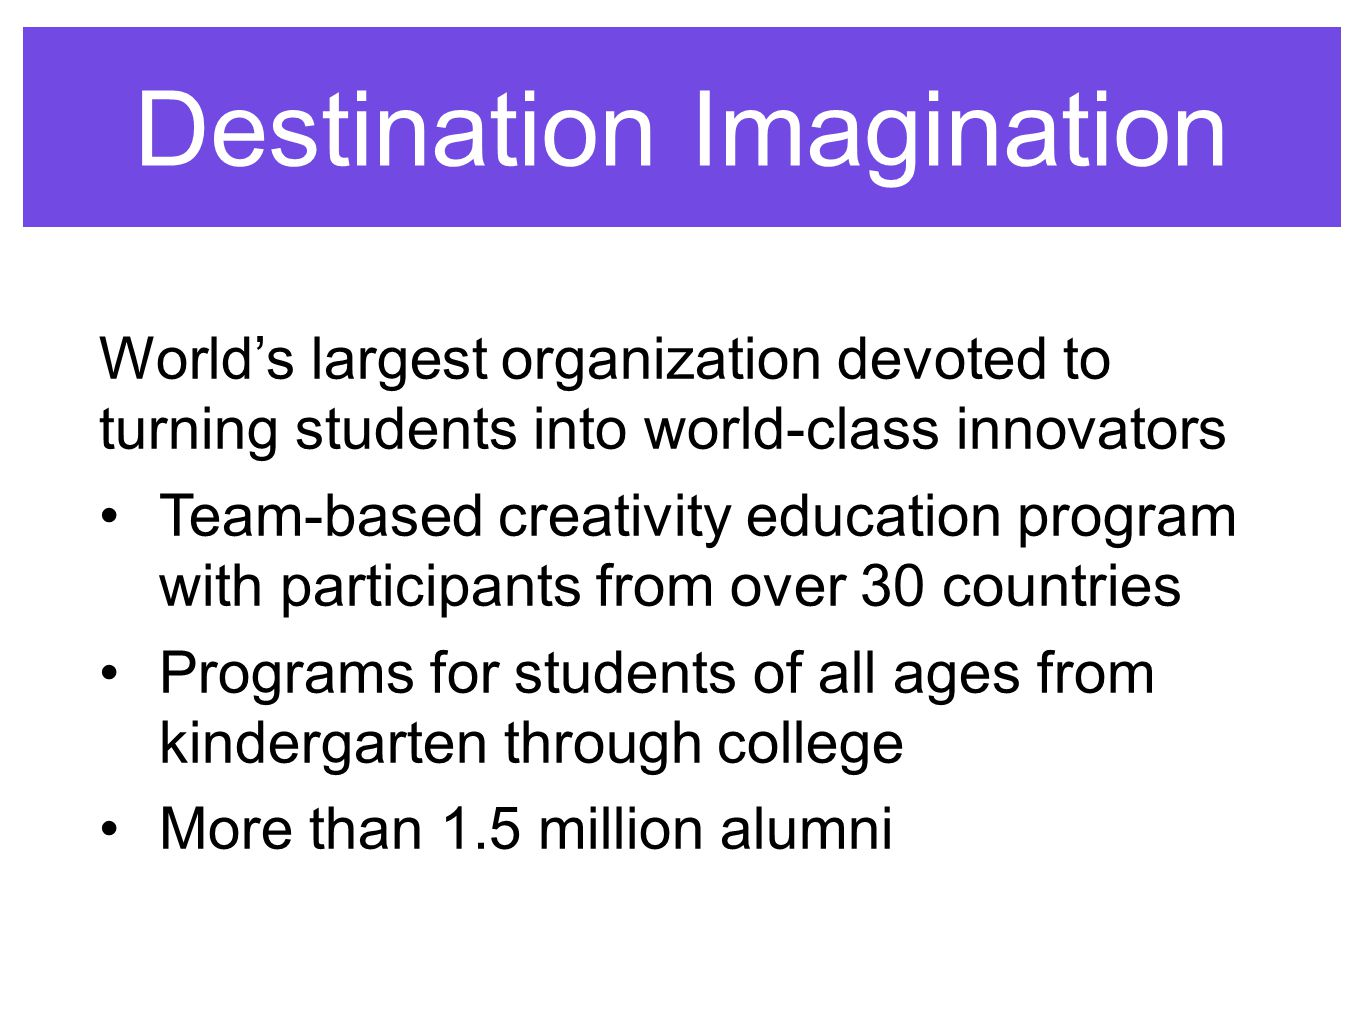 Destination Imagination World's largest organization devoted to turning students into world-class innovators Team-based creativity education program with participants from over 30 countries Programs for students of all ages from kindergarten through college More than 1.5 million alumni